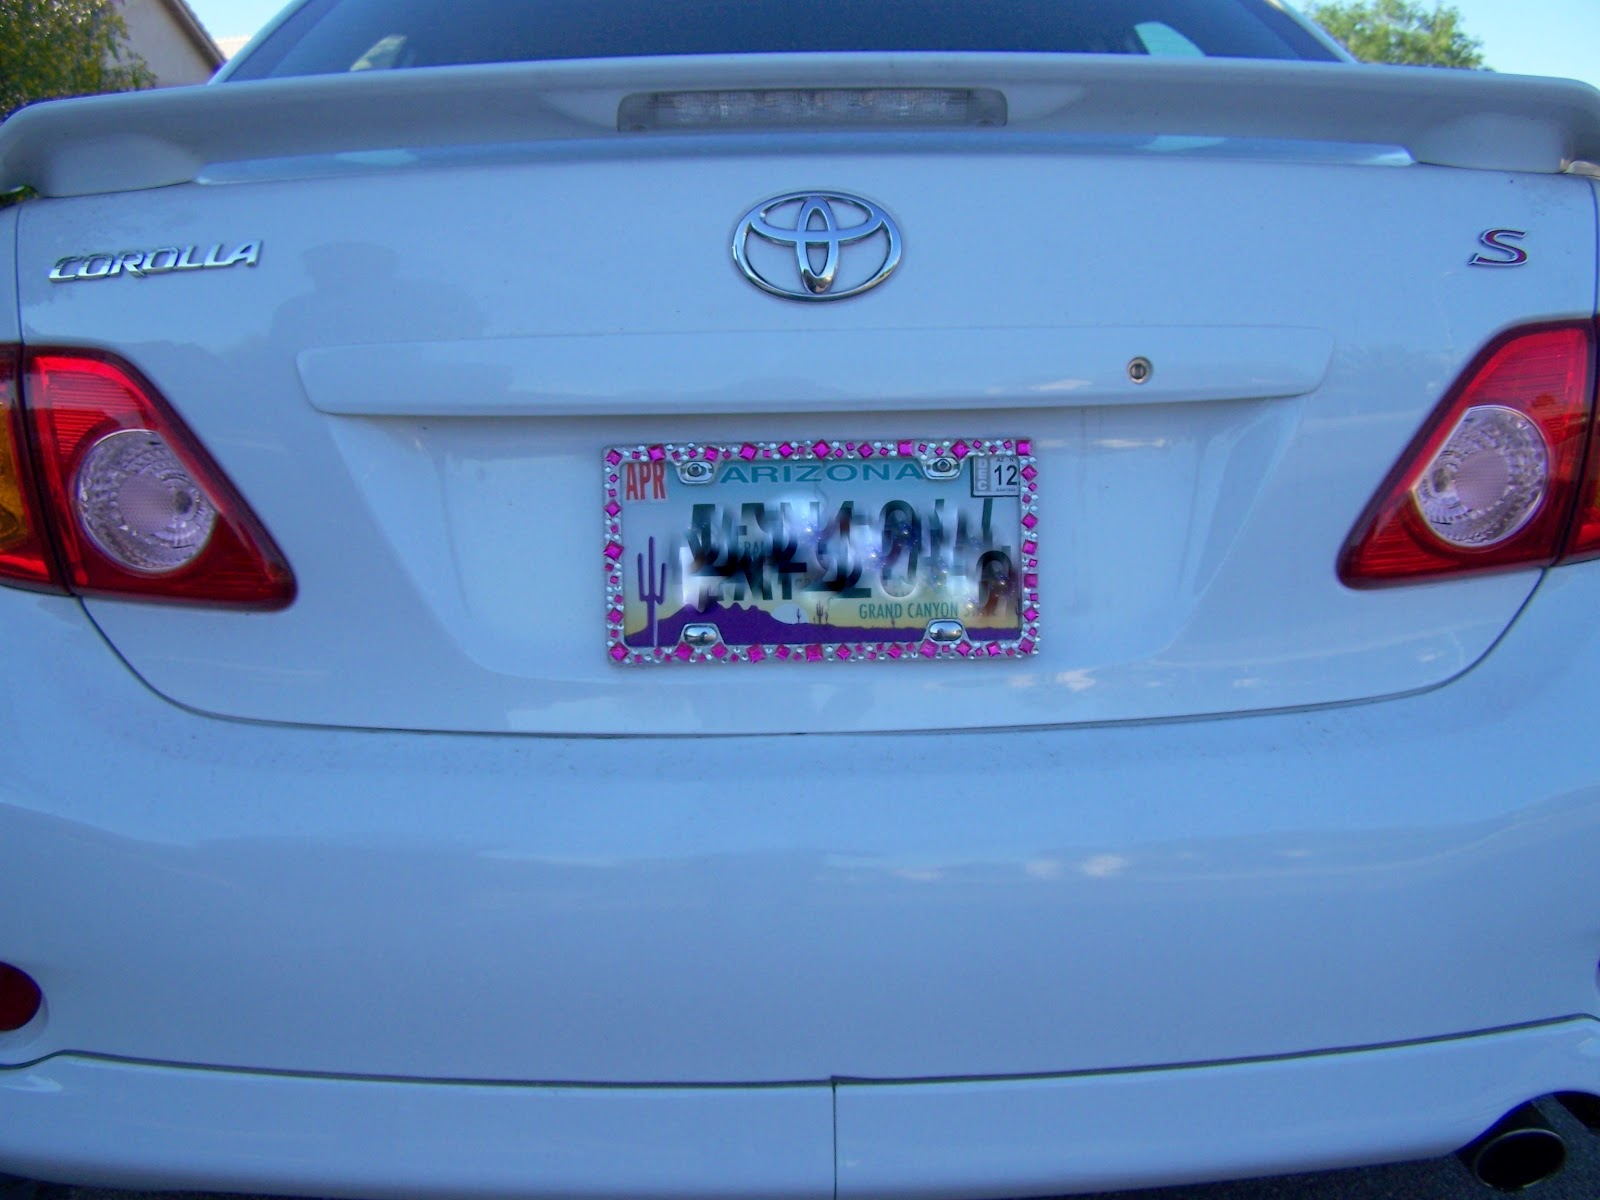 The Busy Broad Diy Blinged Out License Plate